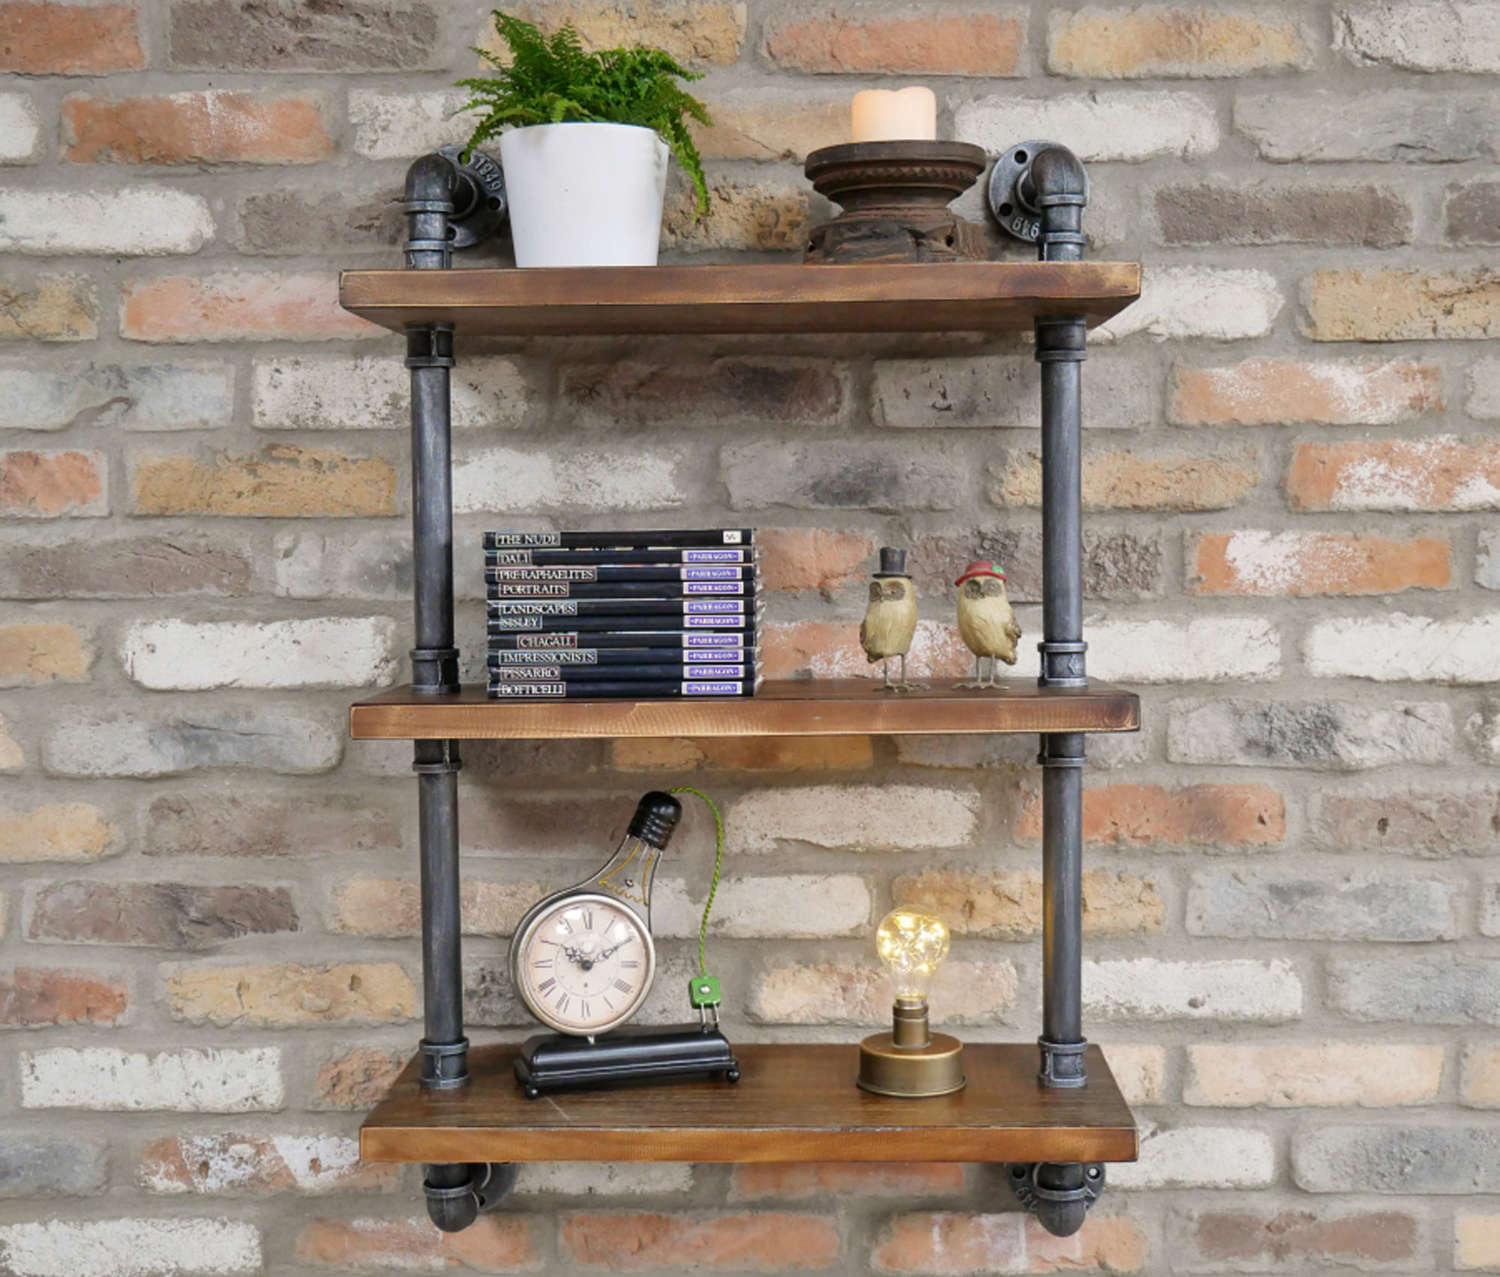 Industrial wood shelving unit with steel pipes